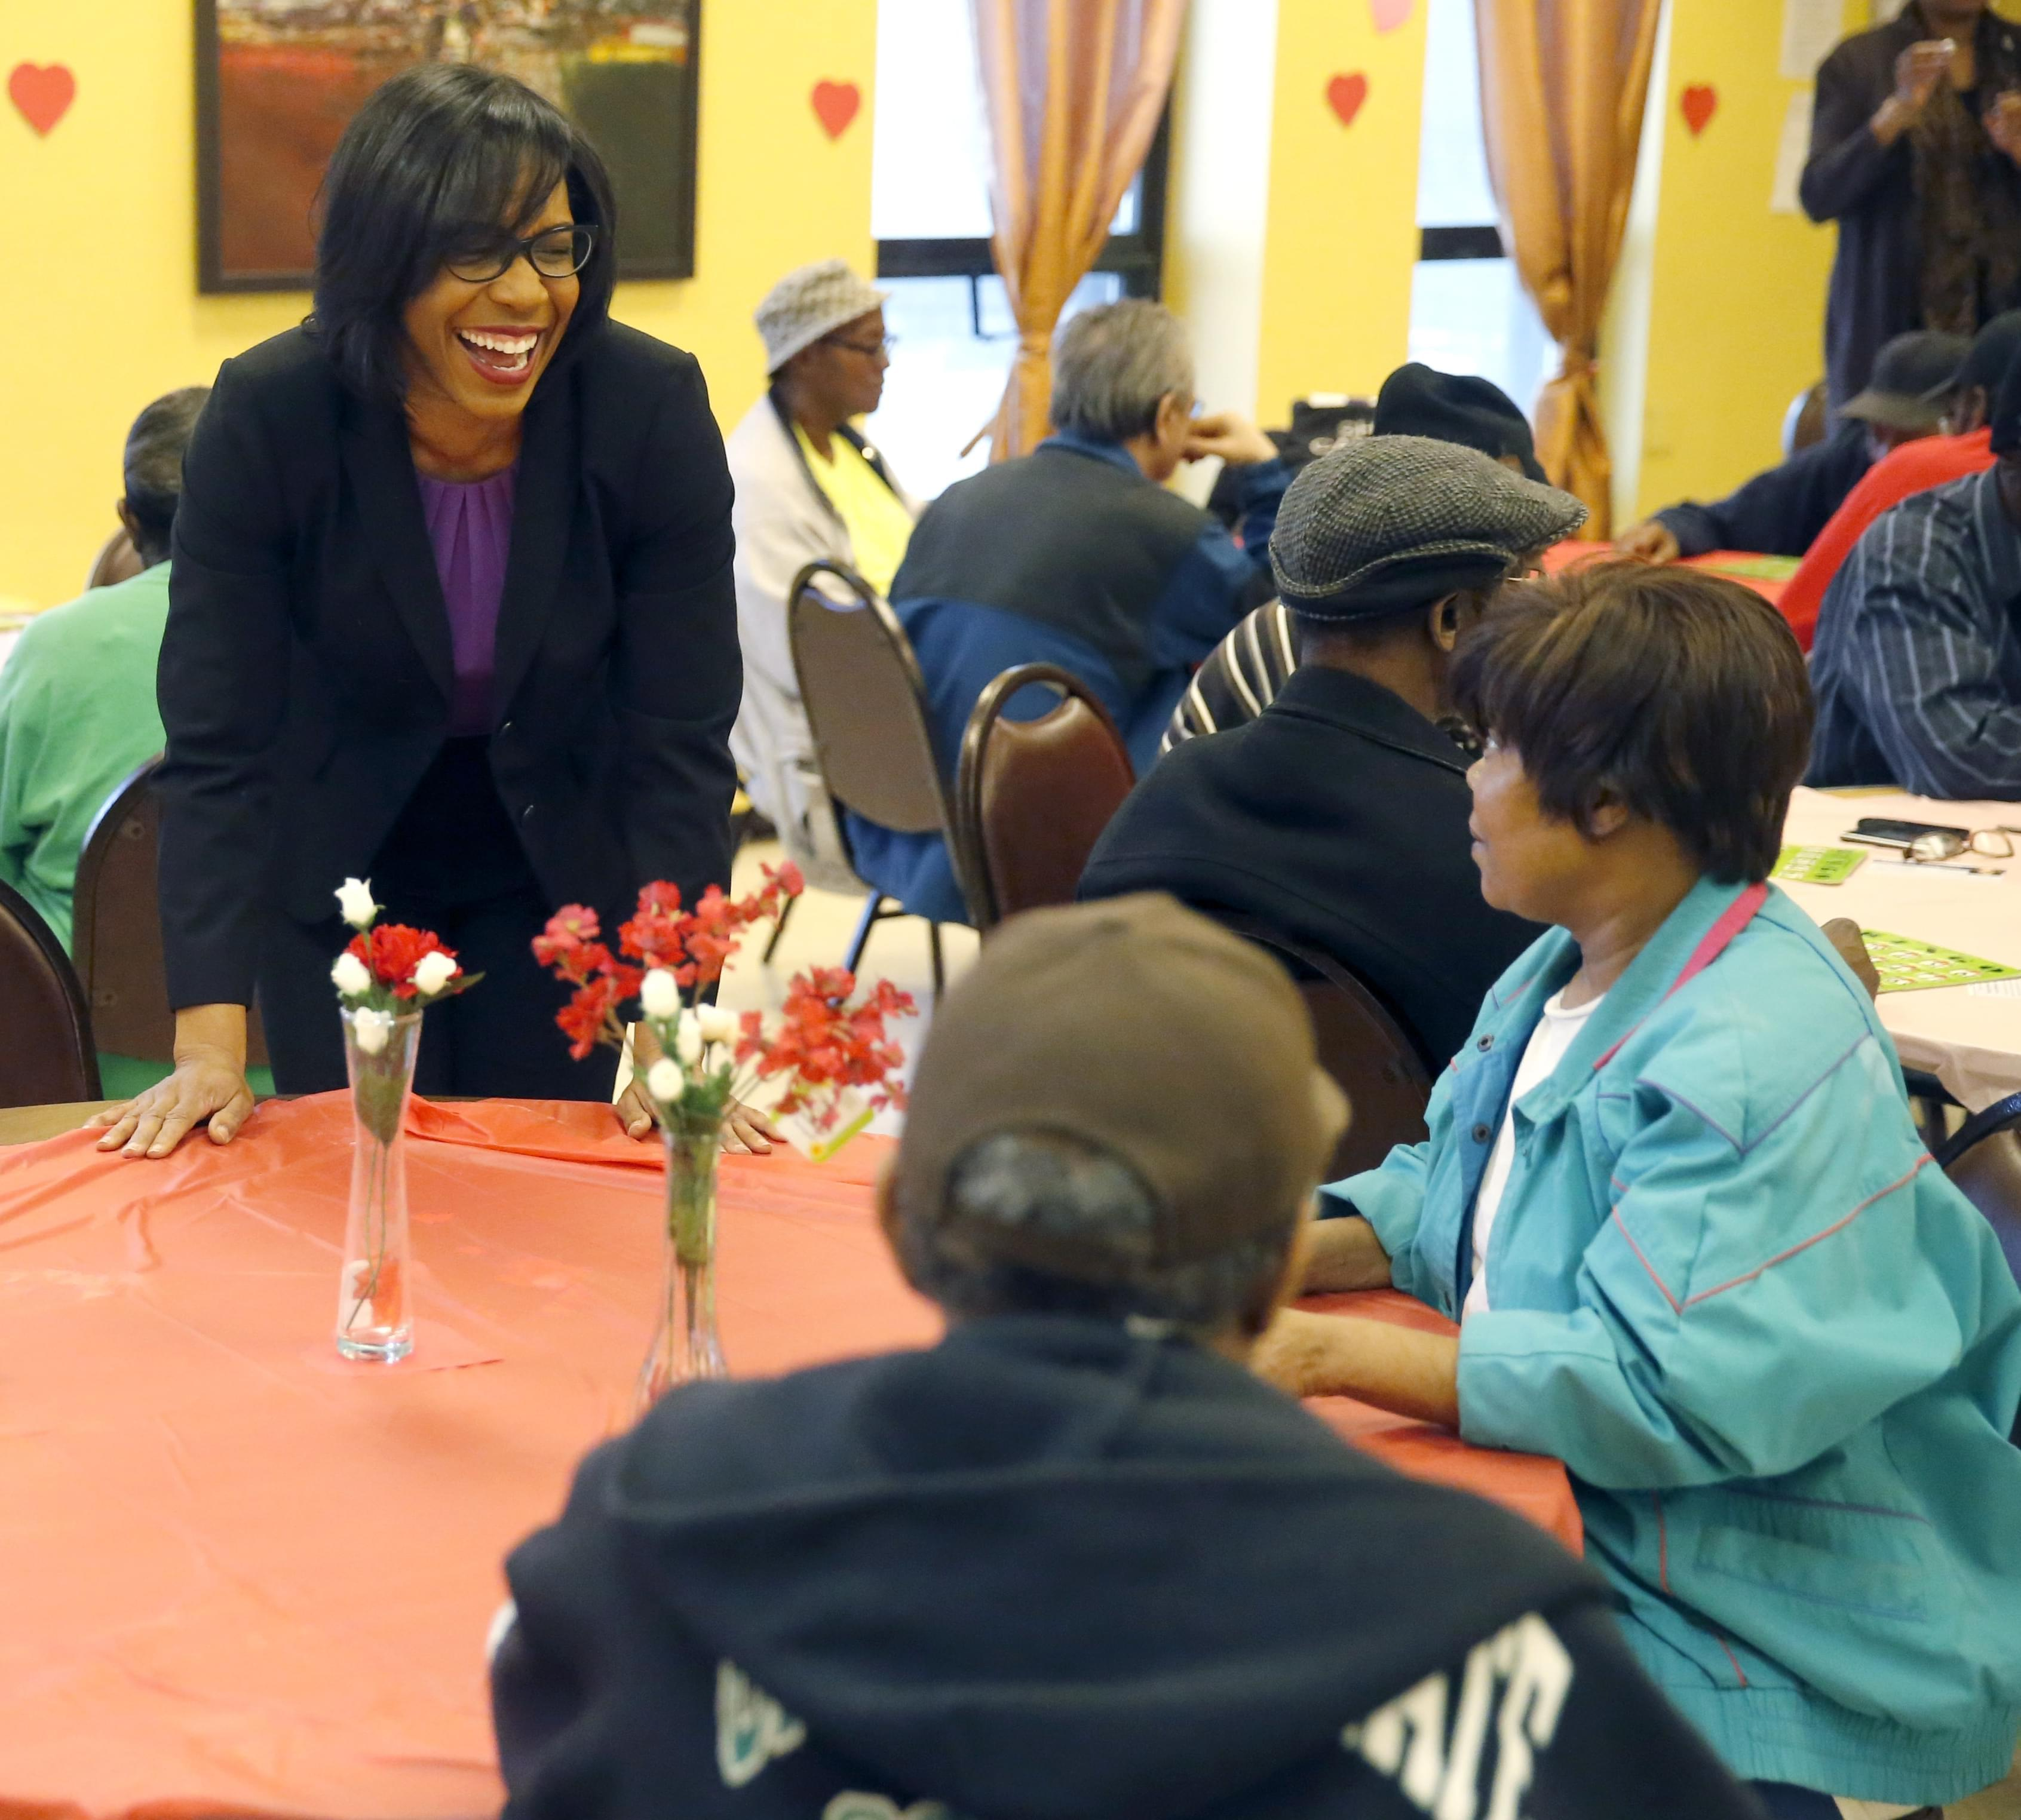 In this Feb. 12, 2016 photo, Democrat Juliana Stratton talks to residents during a bingo party at the Minnie Ripperton apartments in Chicago.Stratton, is trying to unseat incumbent Democratic state Rep. Ken Dunkin. ""